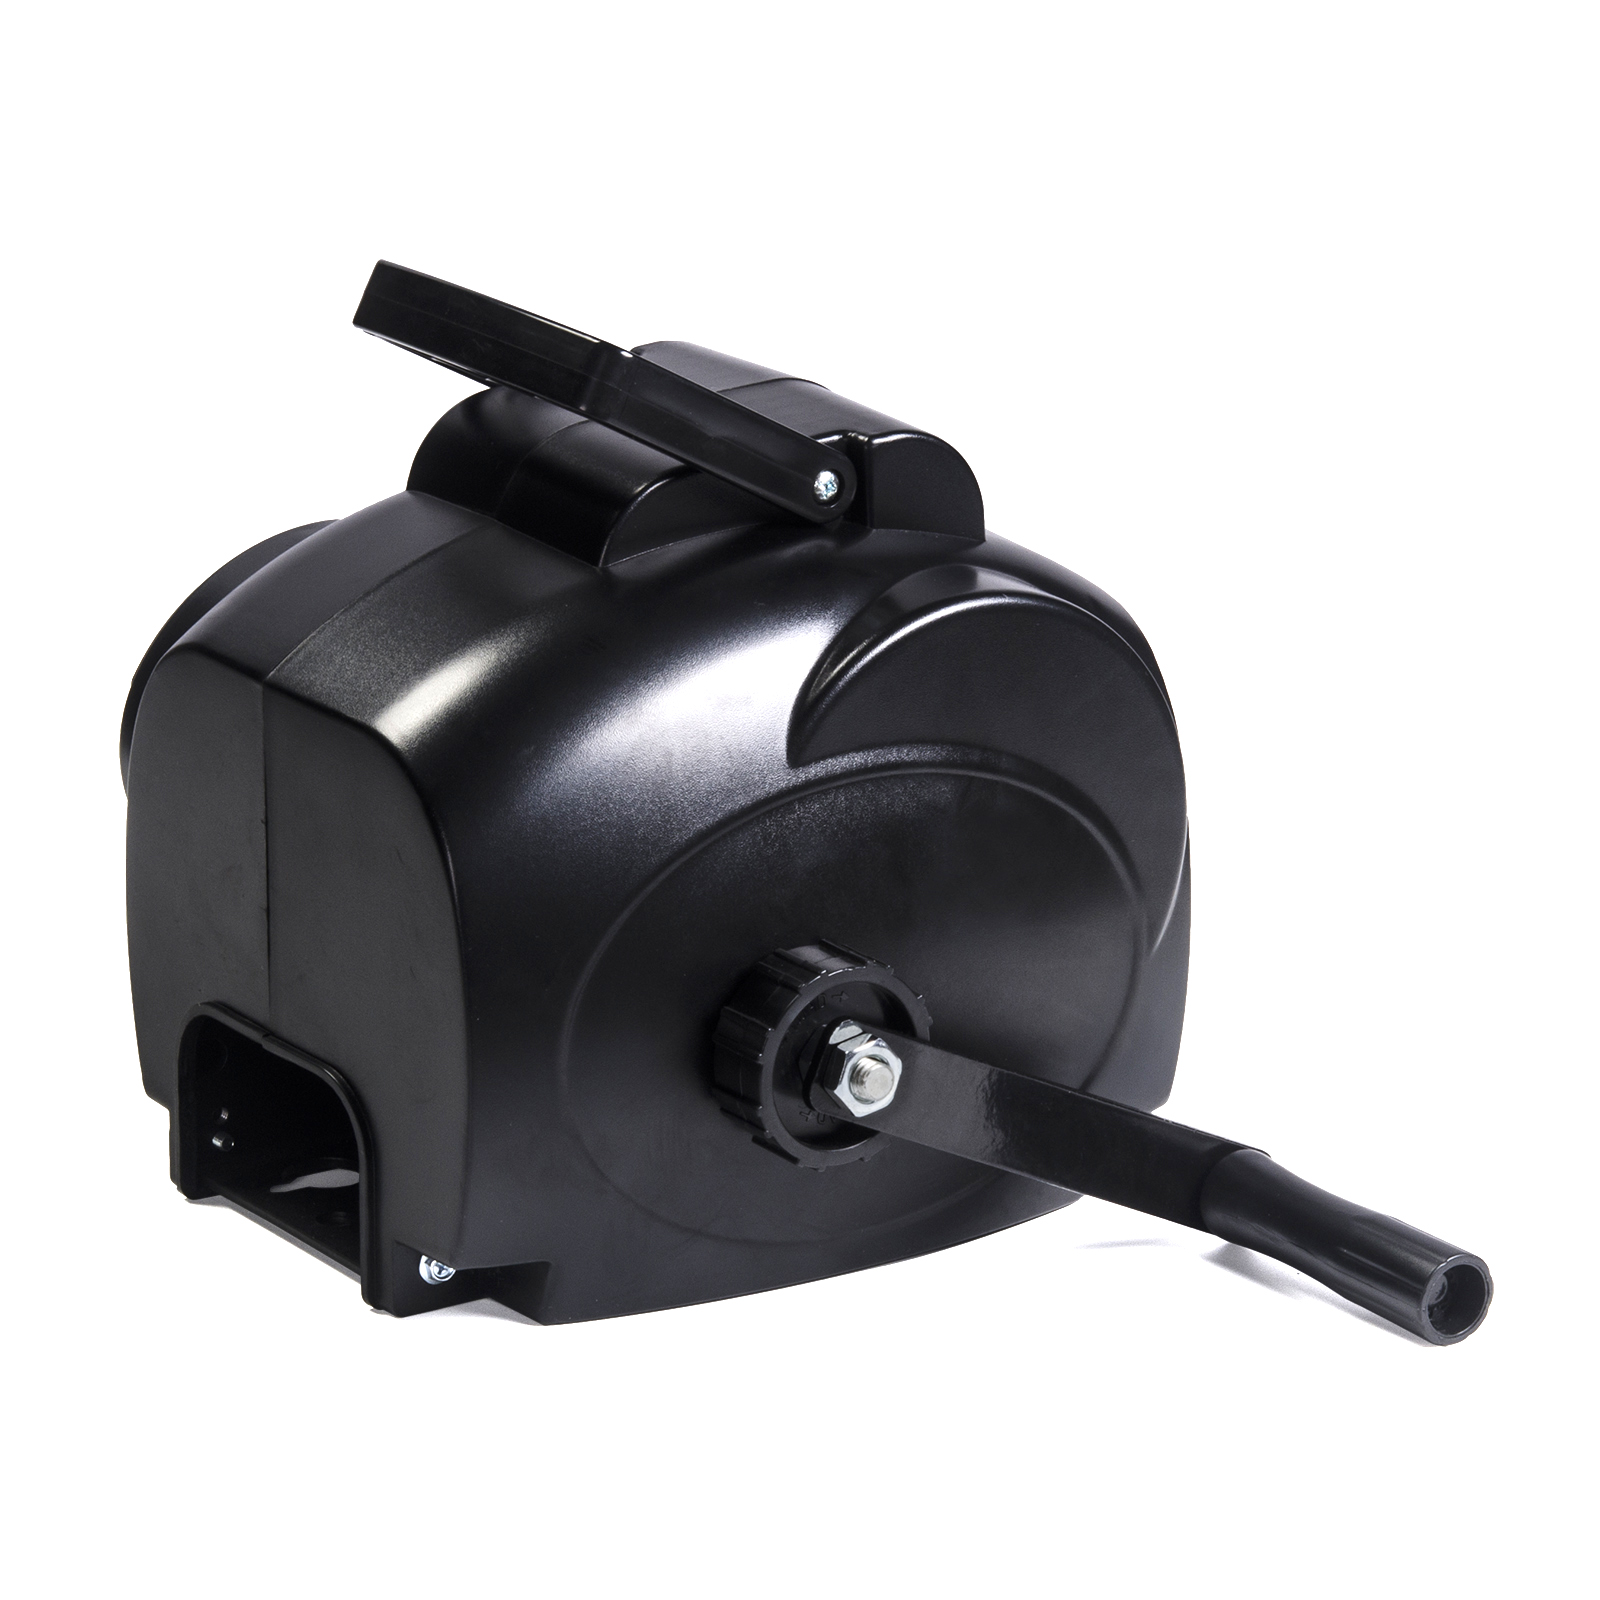 I Max 12v 3500lbs Portable Detachable Electric Cable Boat Winch Atv Imax Wiring Diagram Img